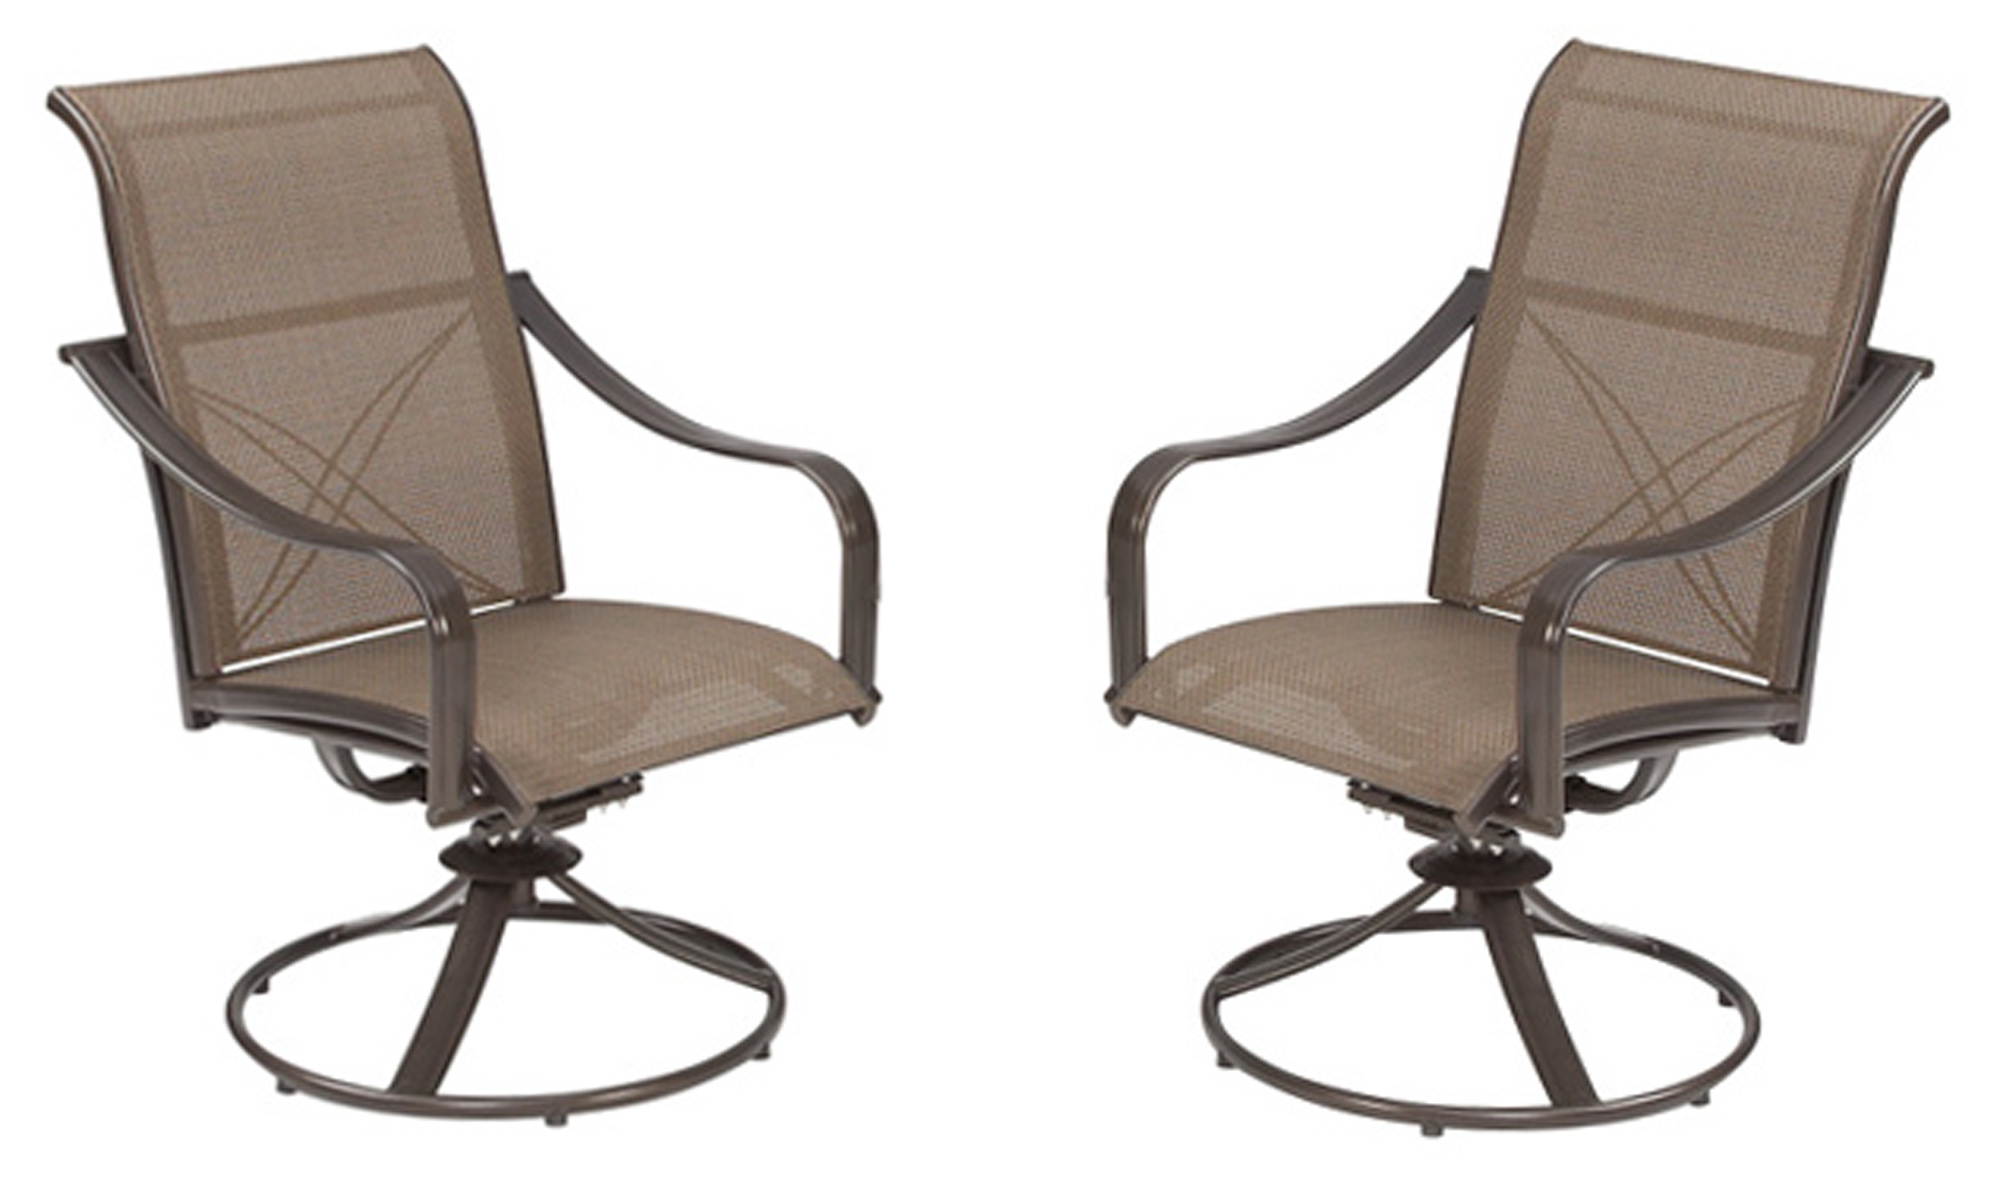 At Home Chairs Patio Chairs Sold At Home Depot Recalled Because Porch Life